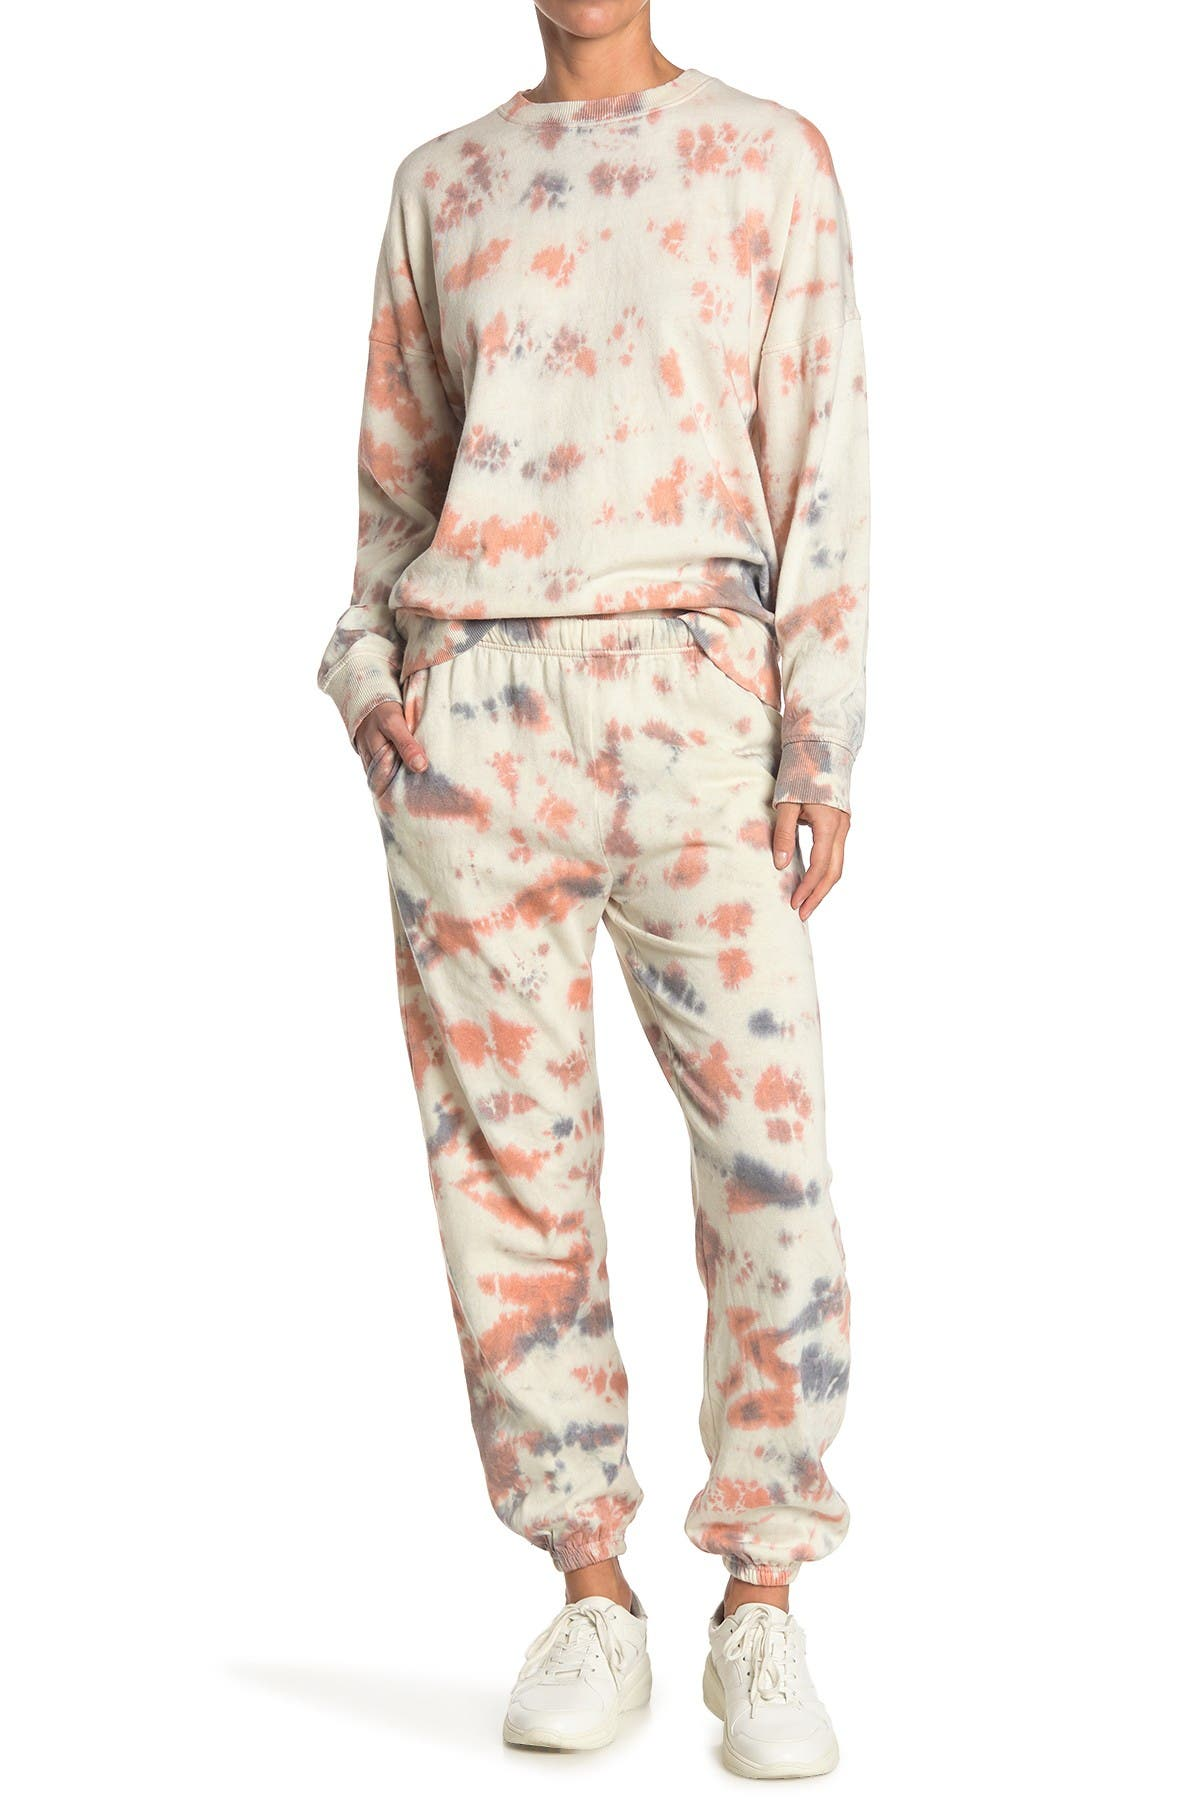 Image of Threads 4 Thought Boyfriend Tie-Dye Organic Cotton Blend Sweatpants